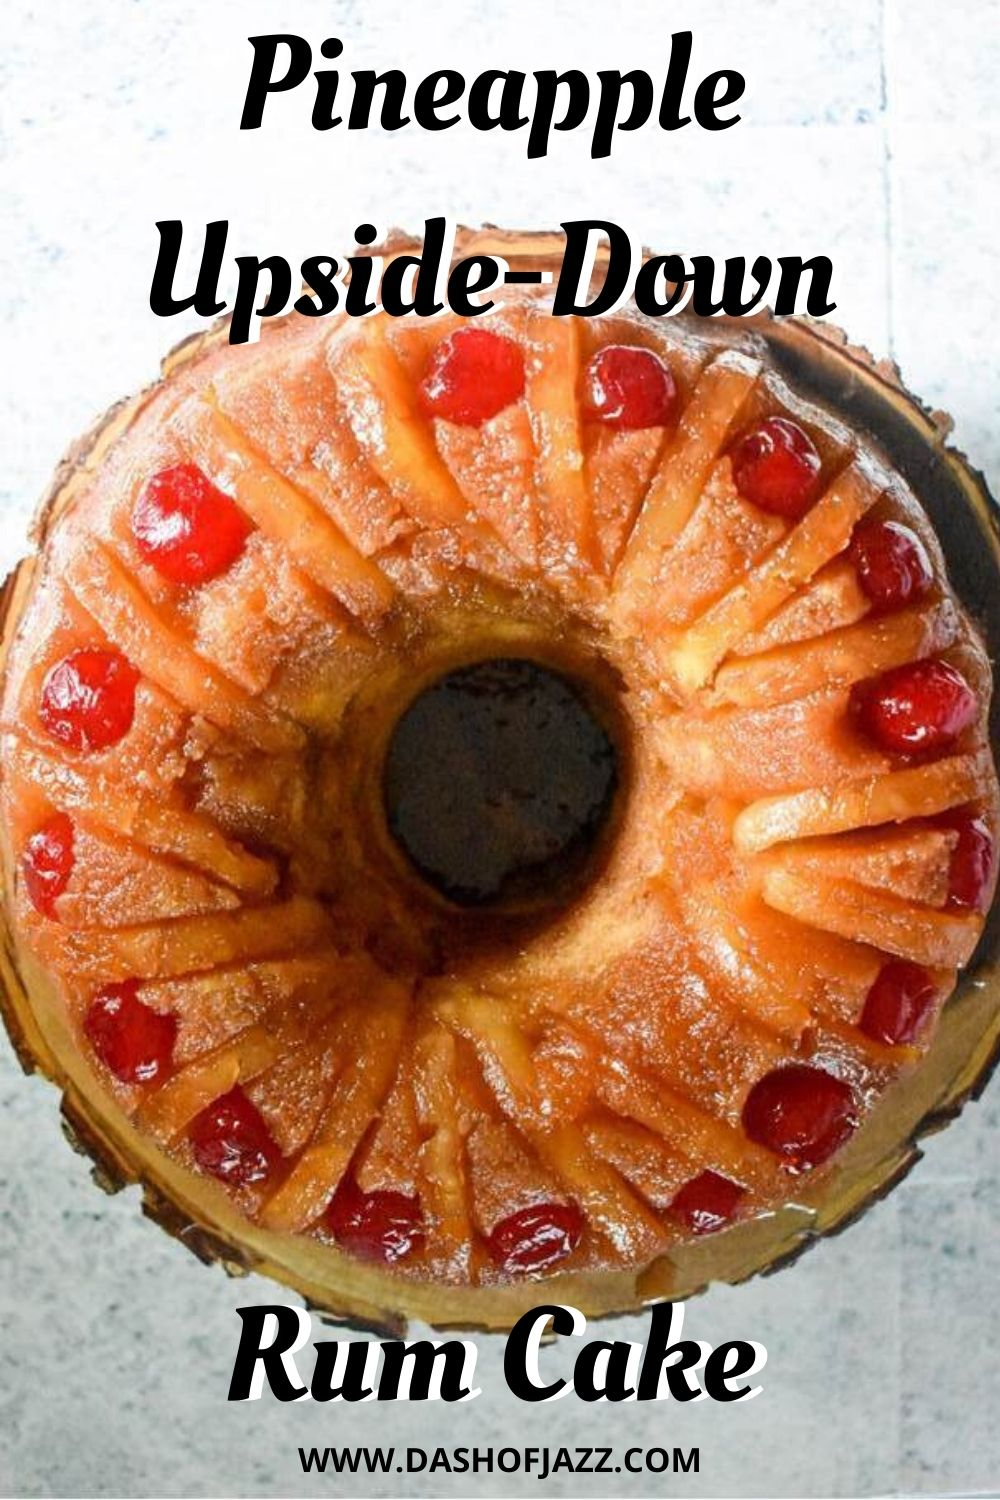 overhead view of pineapple upside down rum cake with text overlay